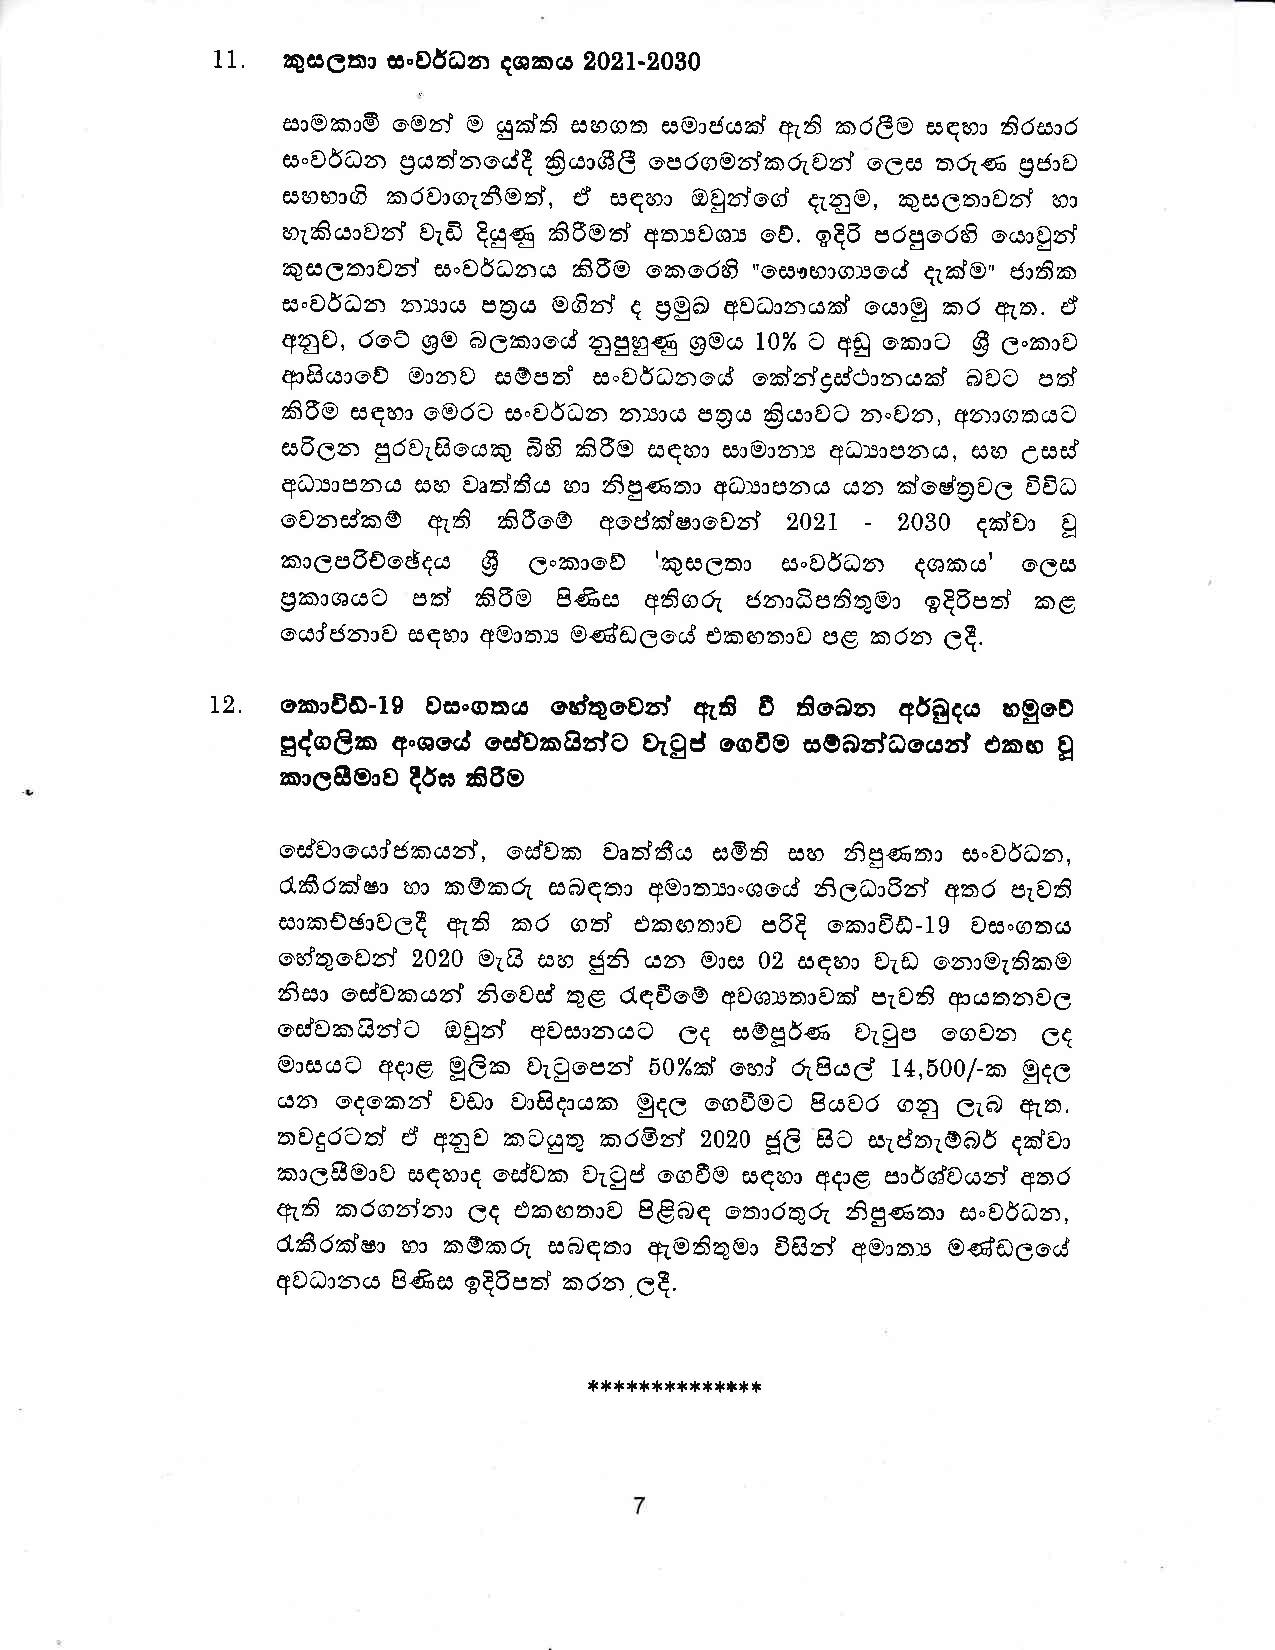 Cabinet Decision on 15.07.2020.Sinhala page 007